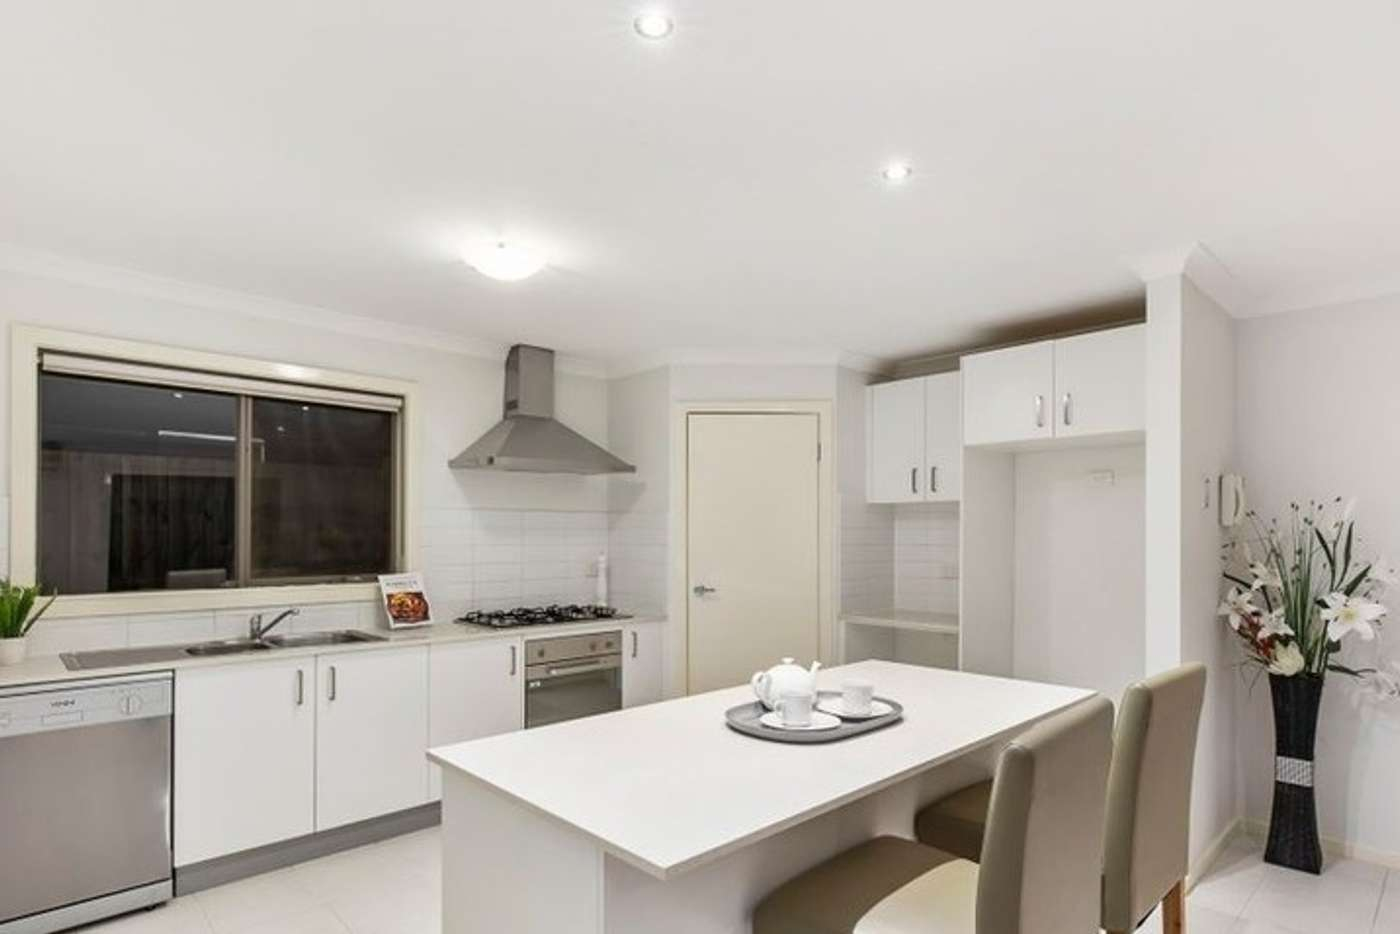 Seventh view of Homely house listing, 18 Talliver Terrace, Truganina VIC 3029